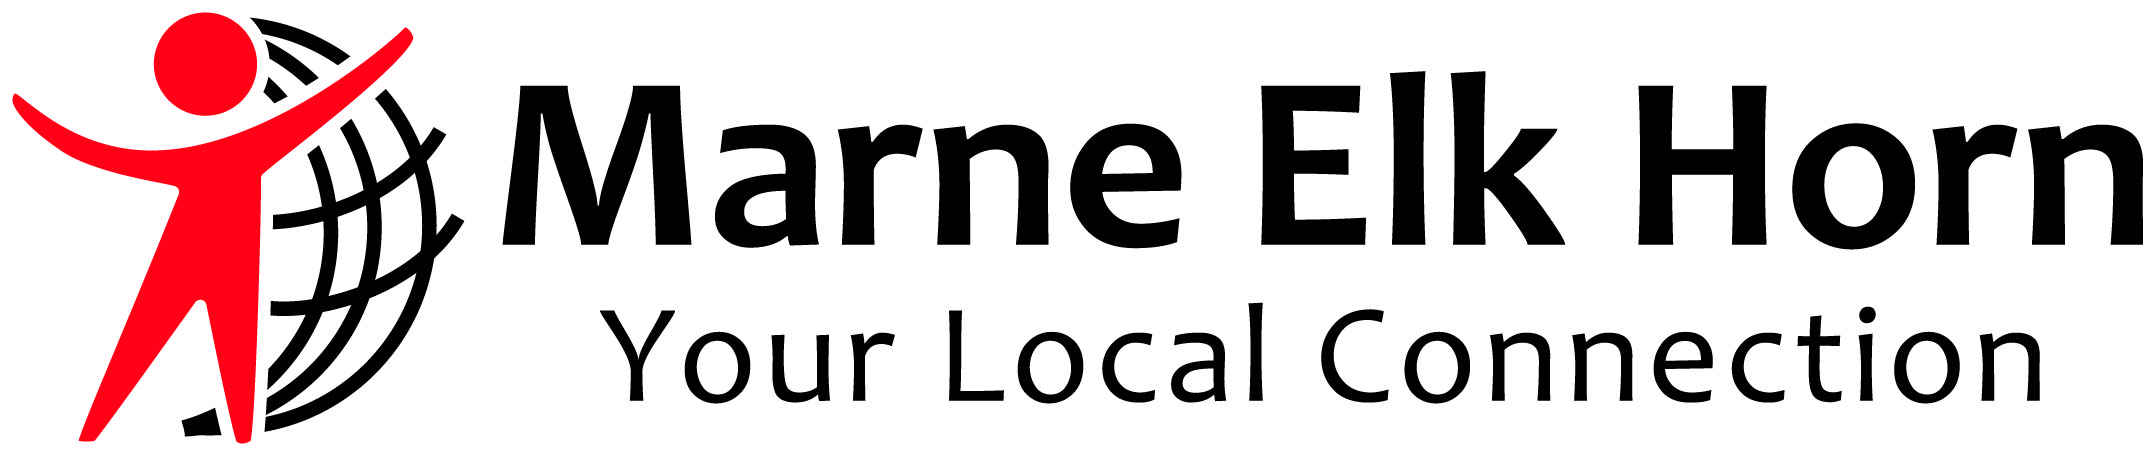 Marne Elk Horn logo red black.jpg